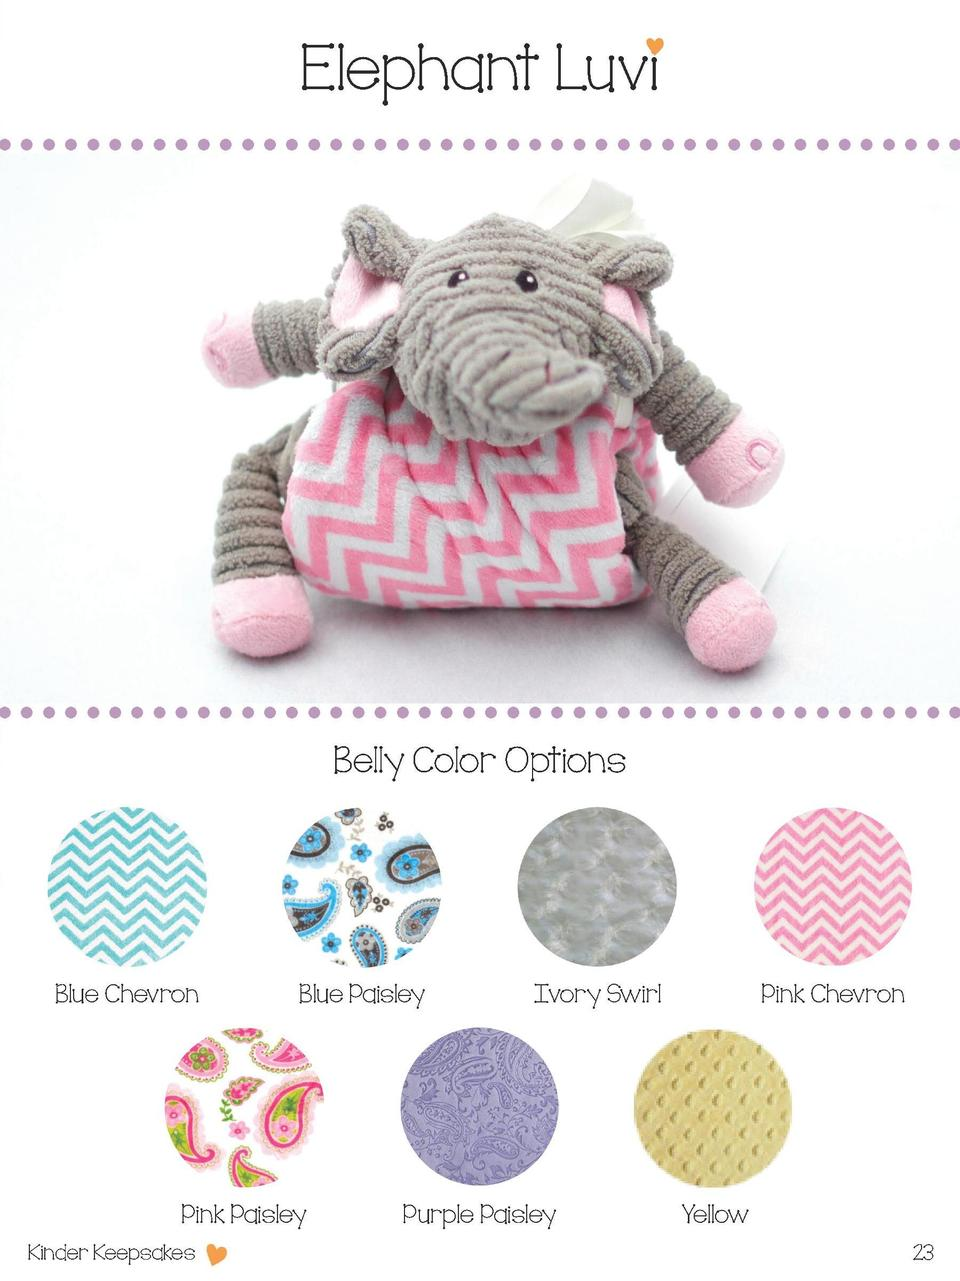 Elephant Luvi  Belly Color Options  Blue Chevron  Blue Paisley  Pink Paisley Kinder Keepsakes  Ivory Swirl  Purple Paisley...